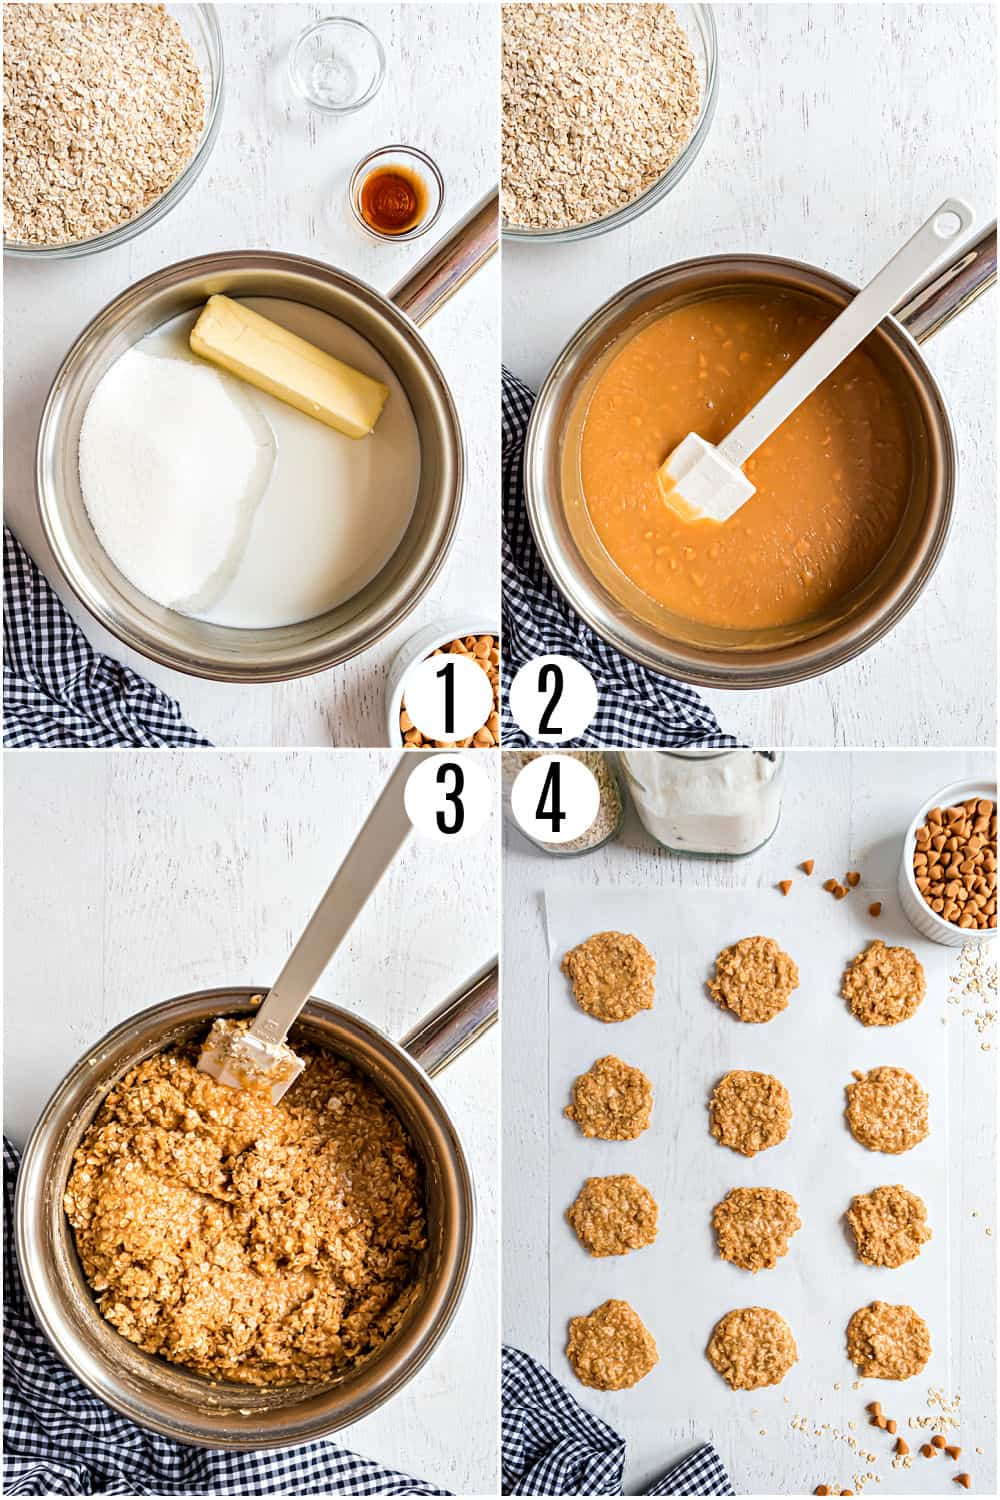 Step by step photos showing how to make no bake oatmeal scotchies.